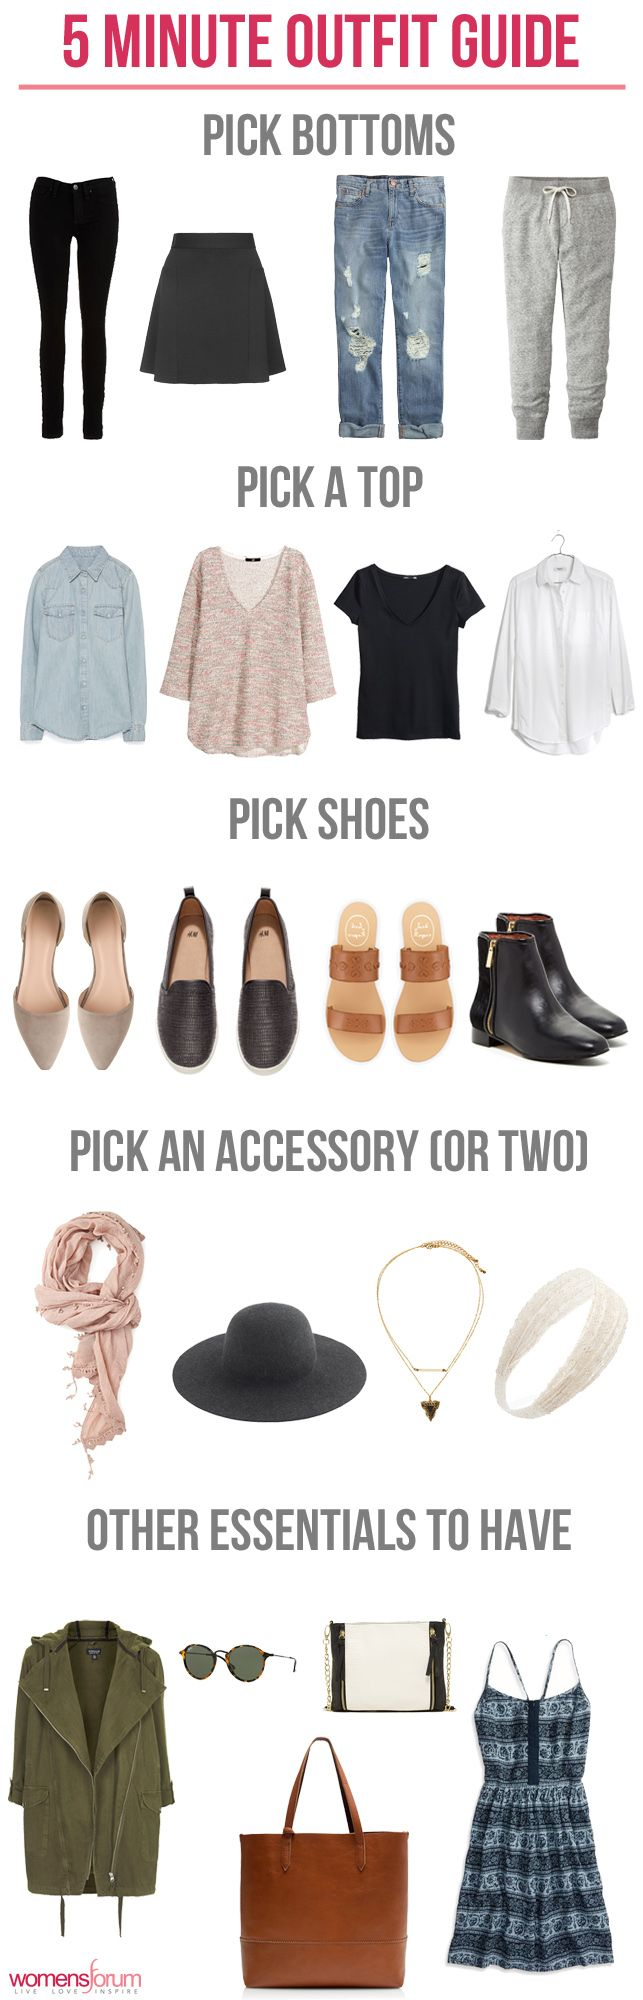 When in doubt of what to wear, try this fun 5-Minute Outfit Guide! http://www.womensforum.com/the-five-minute-outfit-guide.html